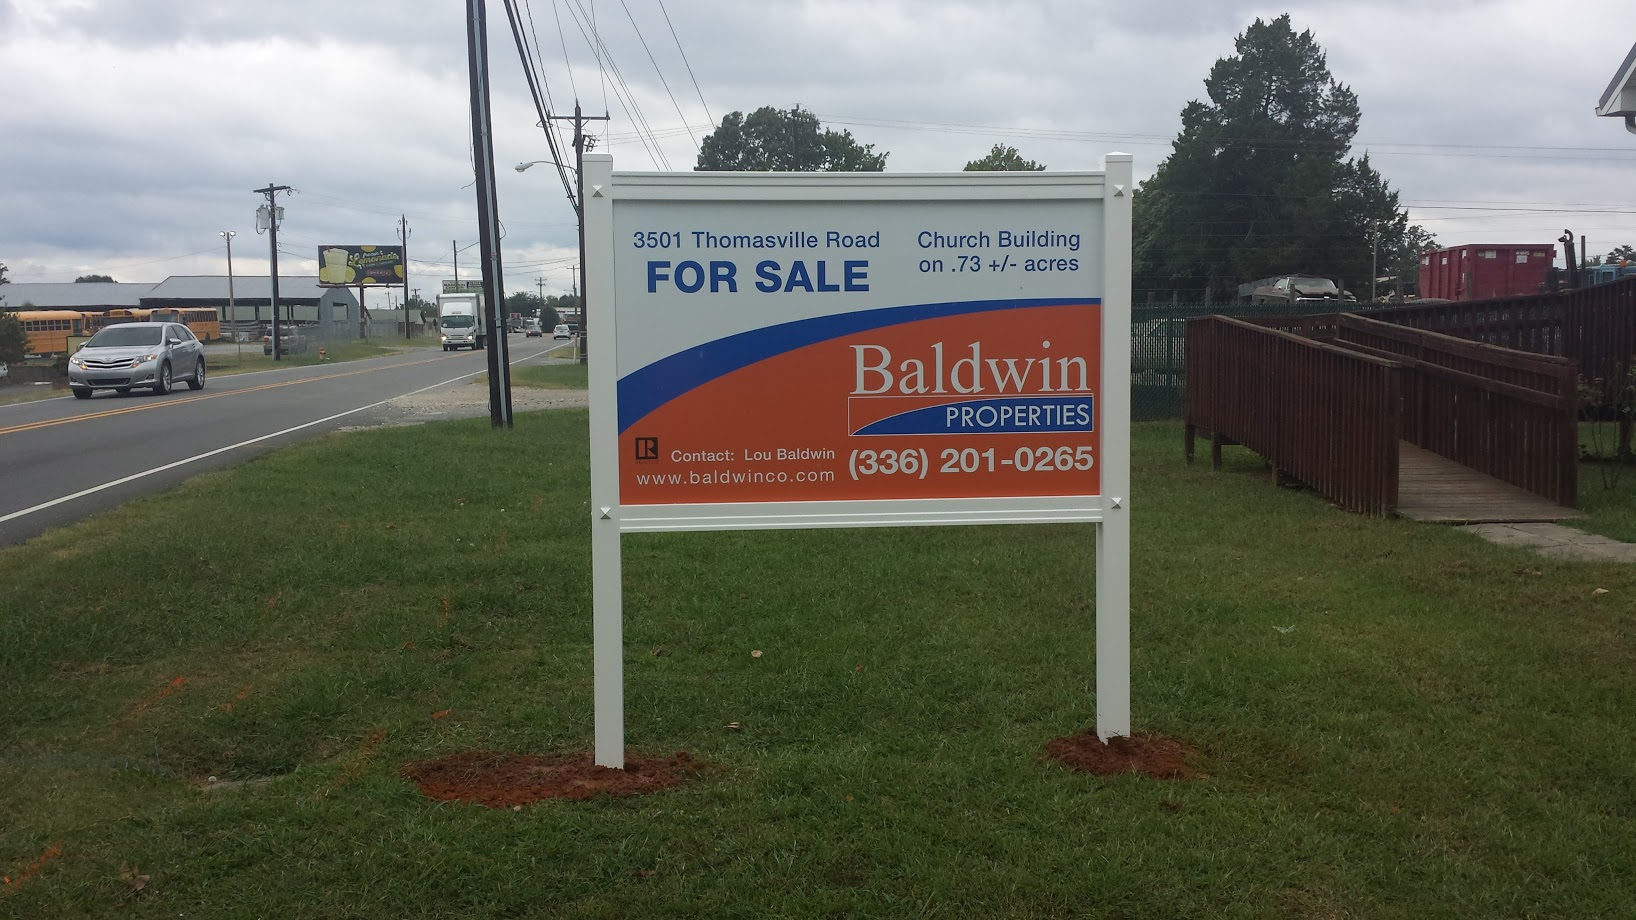 baldwinco office sale signage